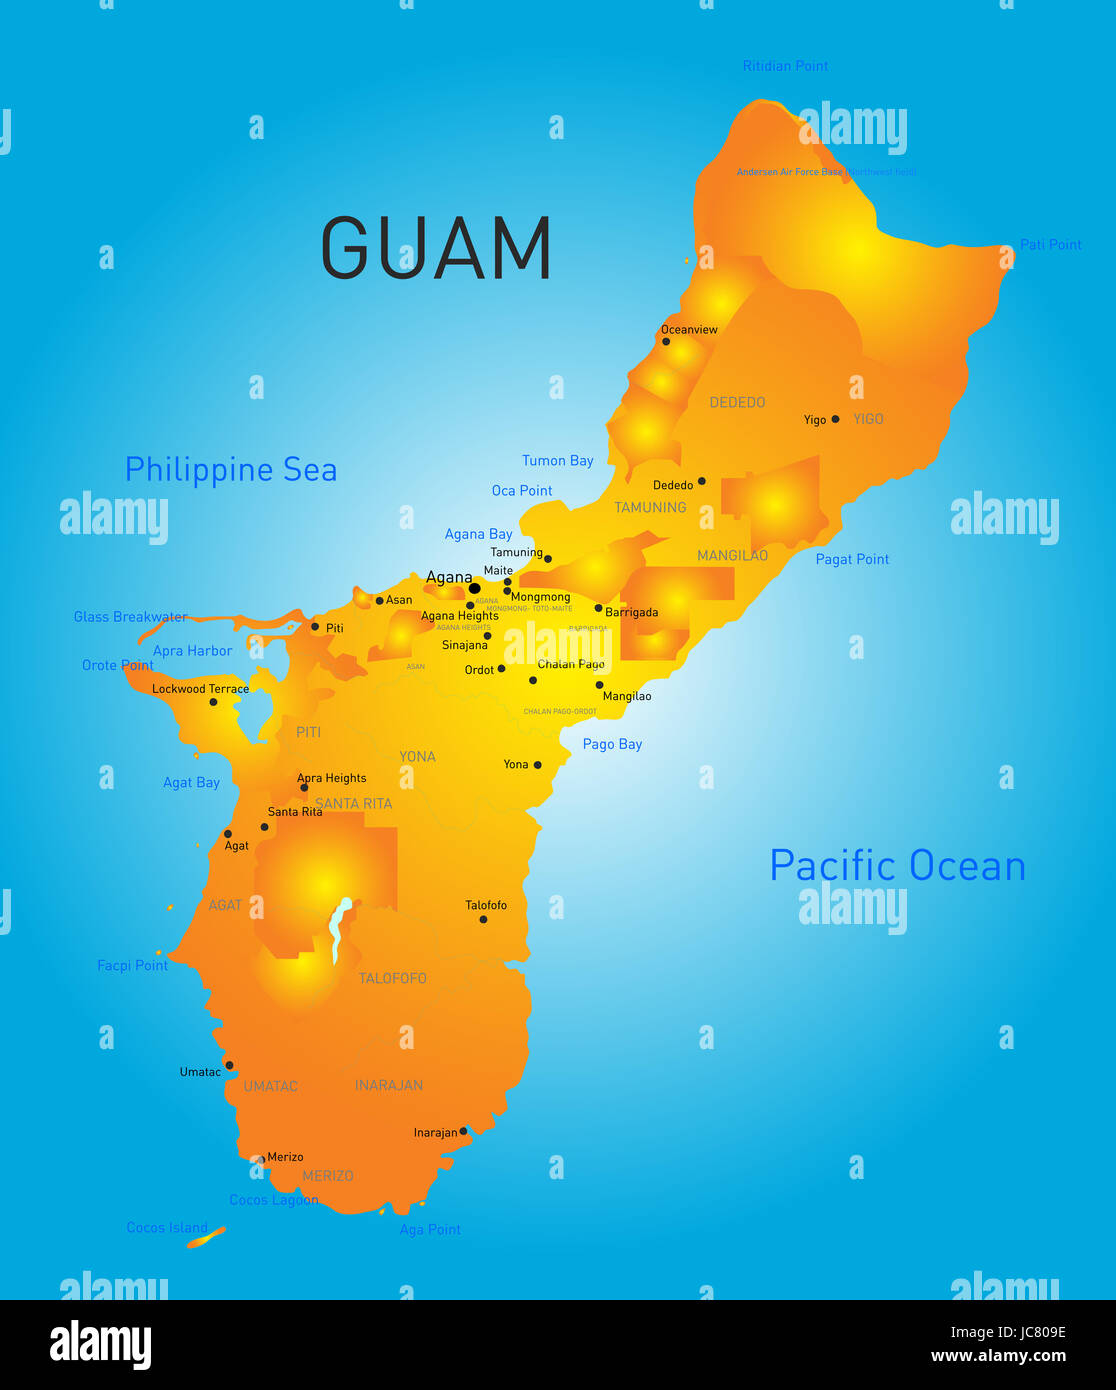 Guam Country Vector Color Map Stock Photo Royalty Free Image - Guam map